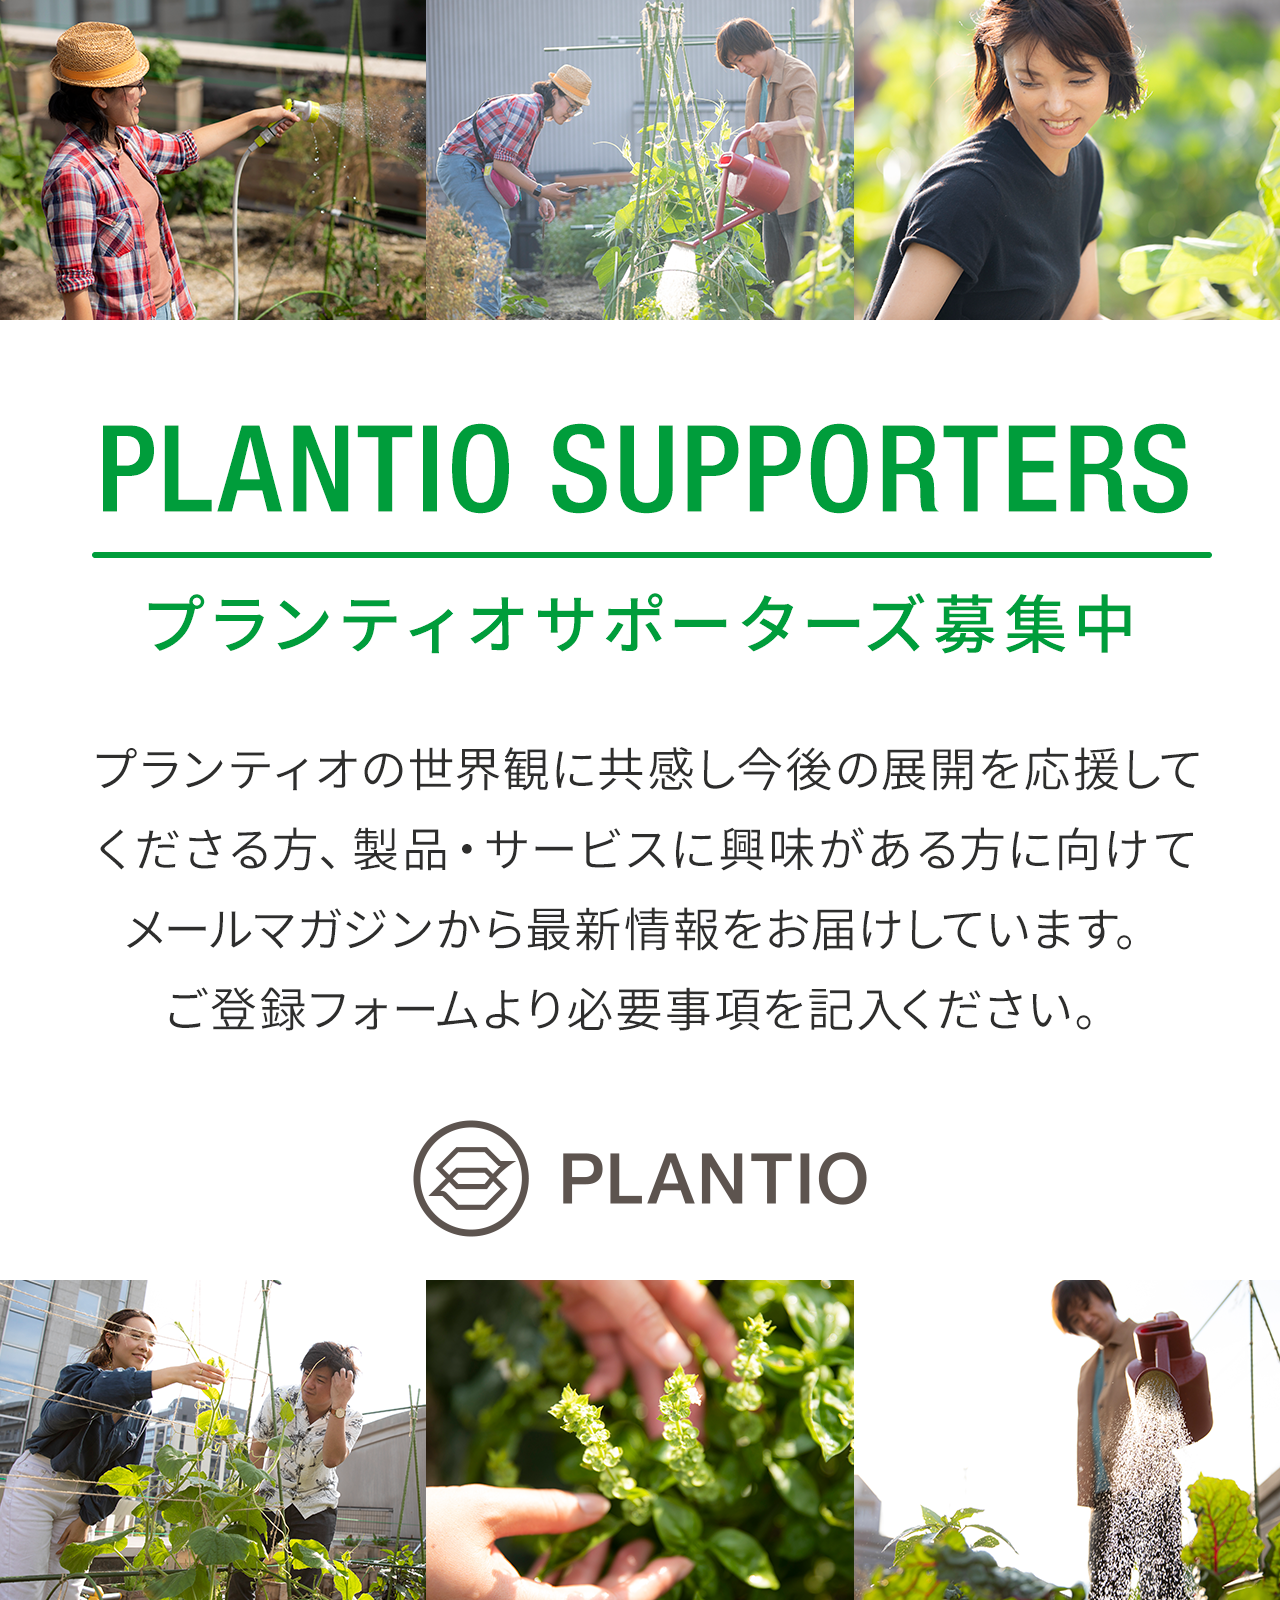 PLANTIO SUPPORtERS